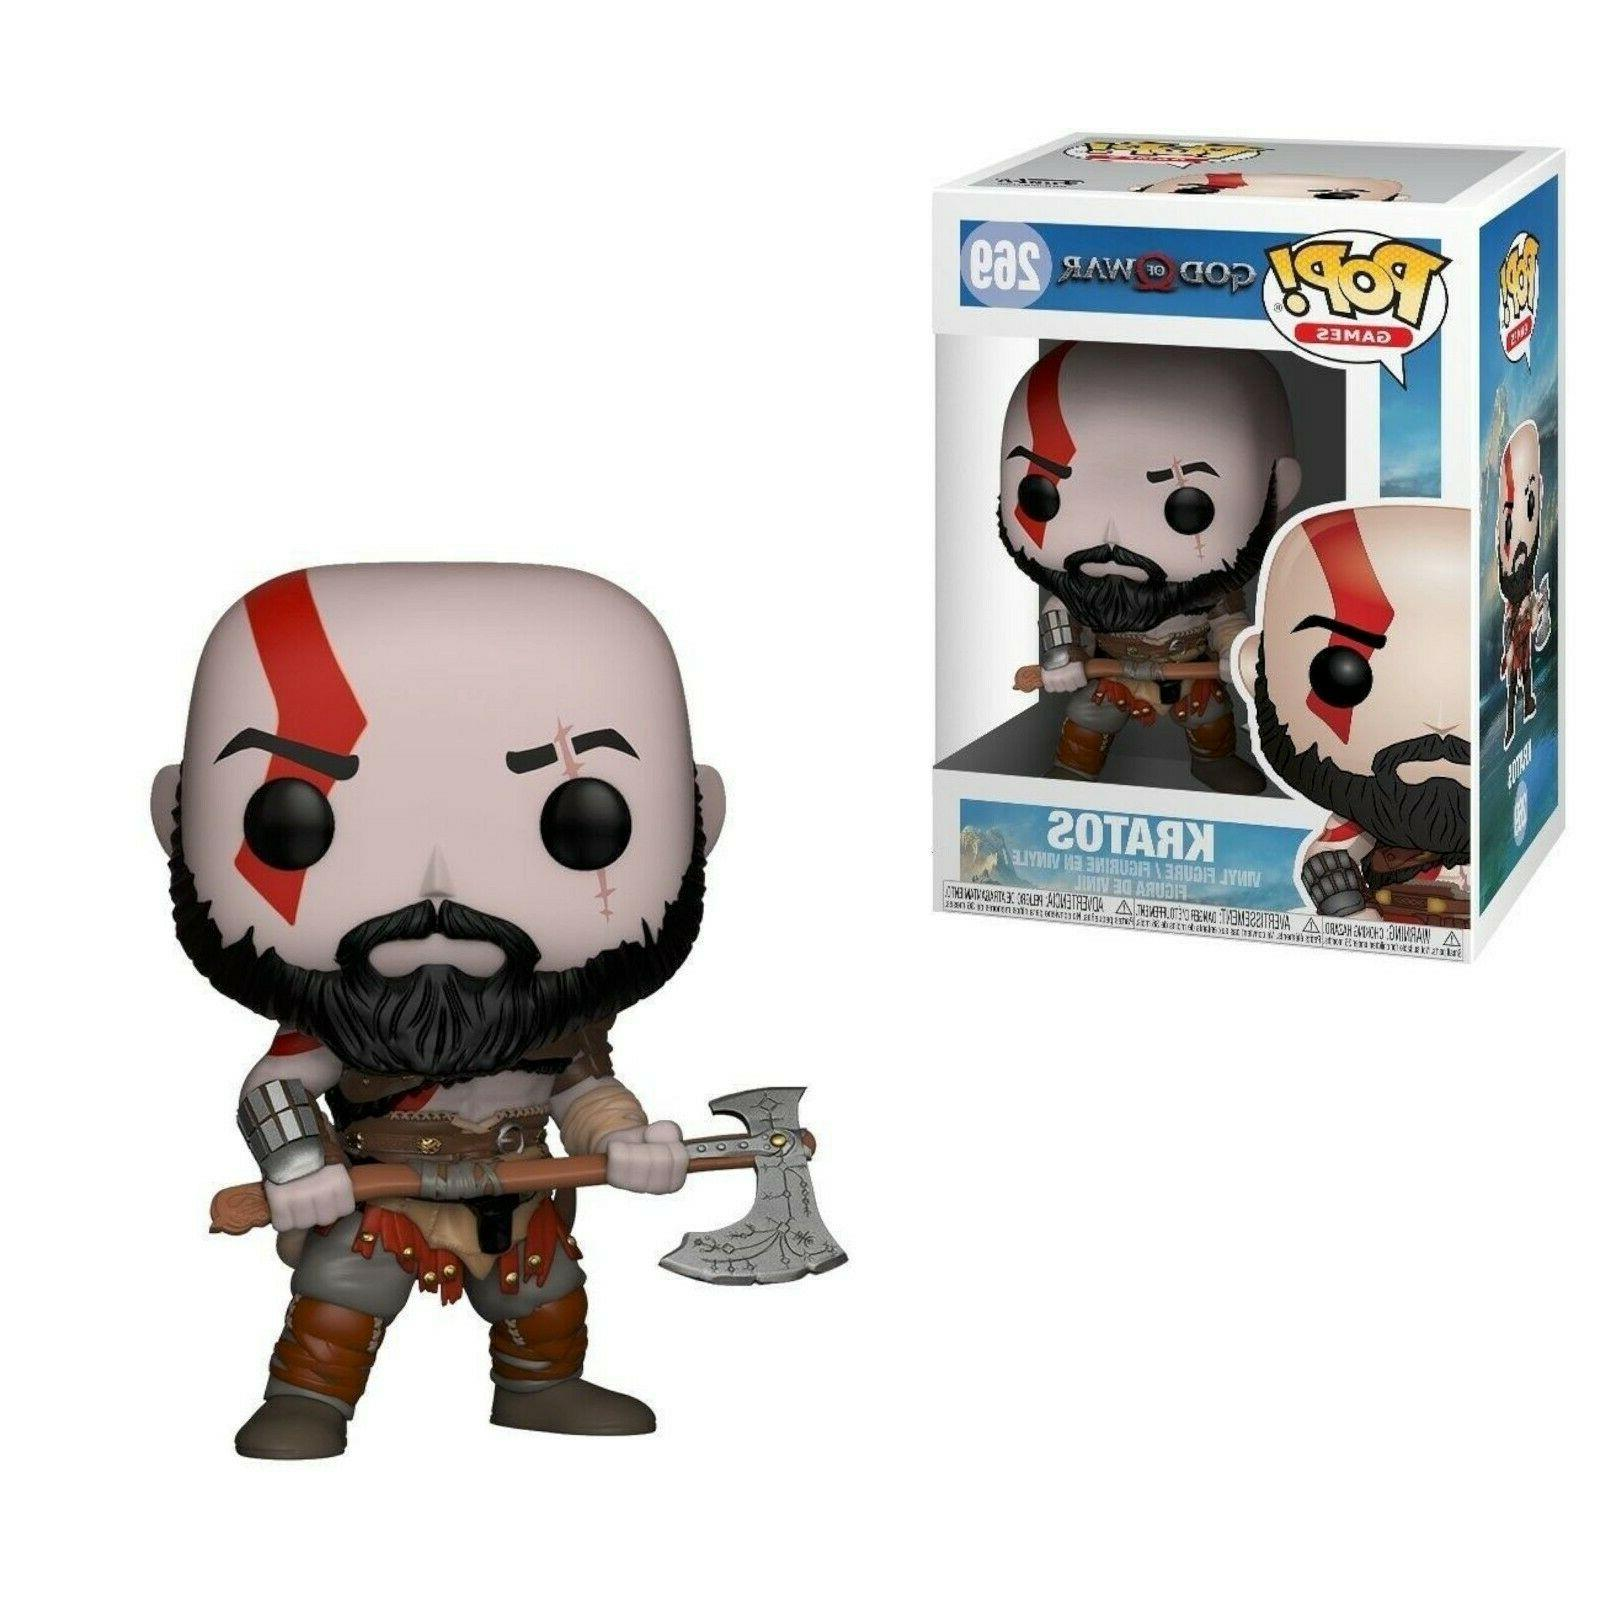 new funko pop games god of war